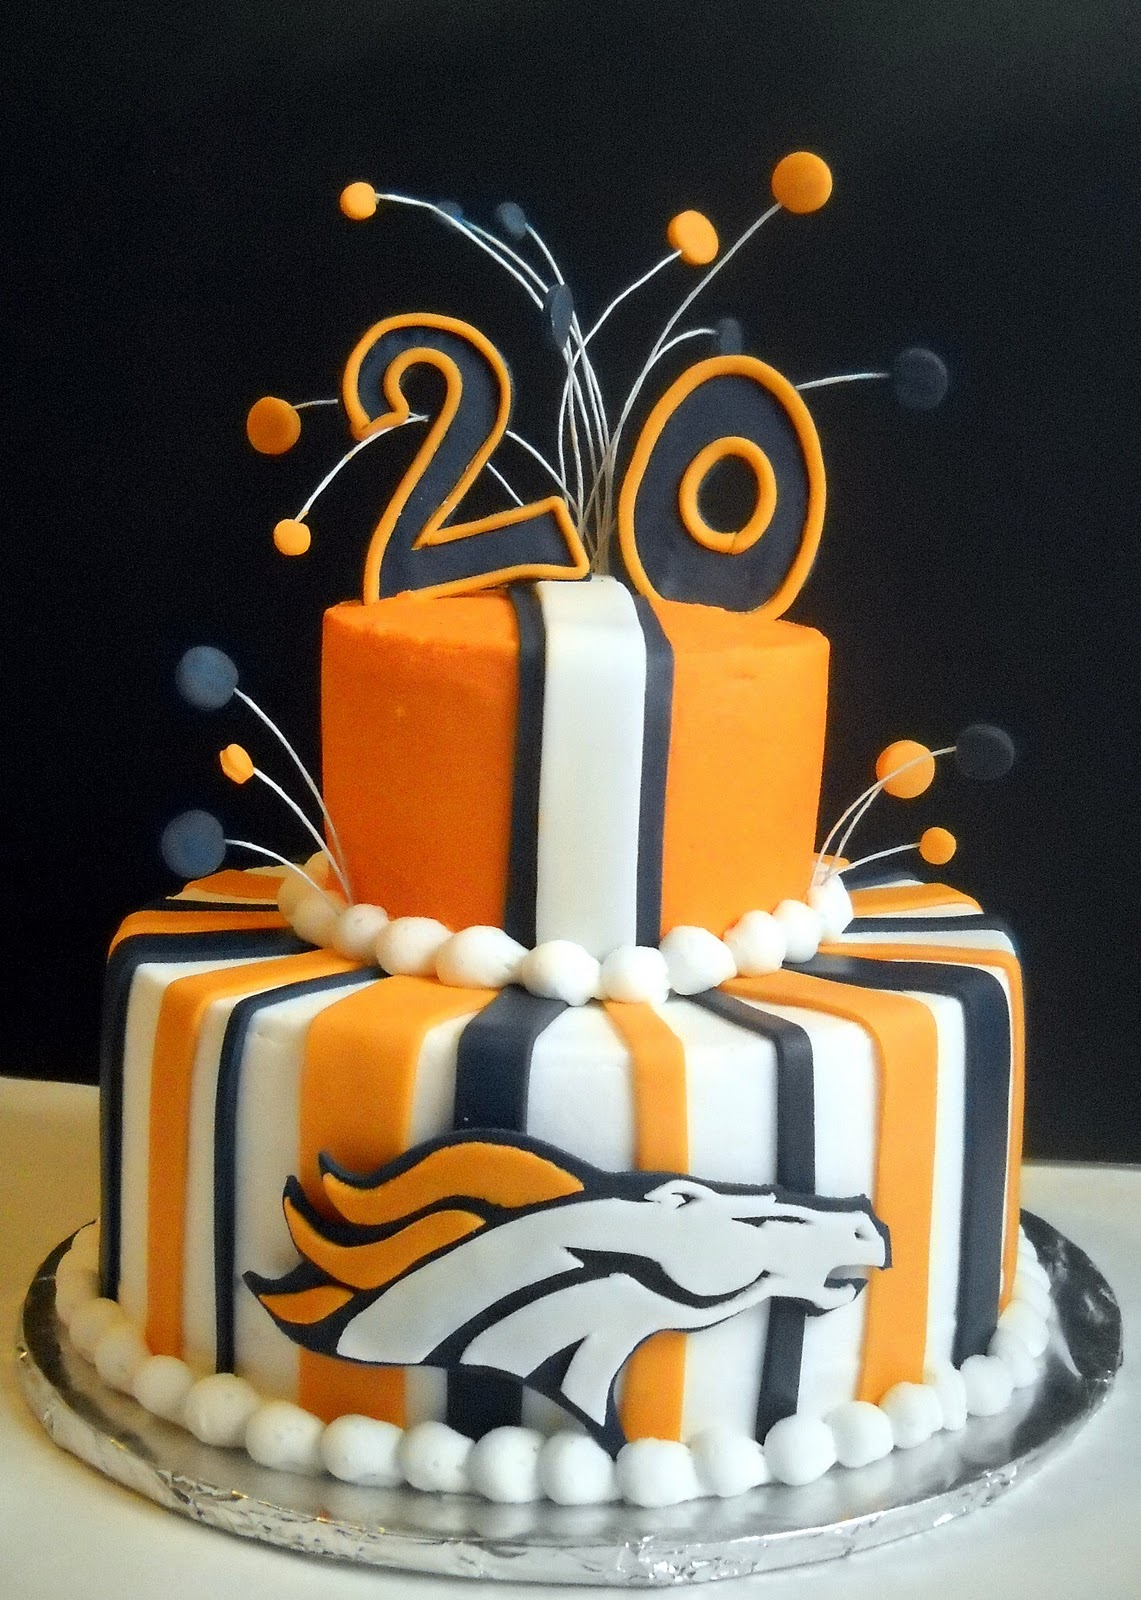 Pin Denver Broncos Cake Envy Cake On Pinterest